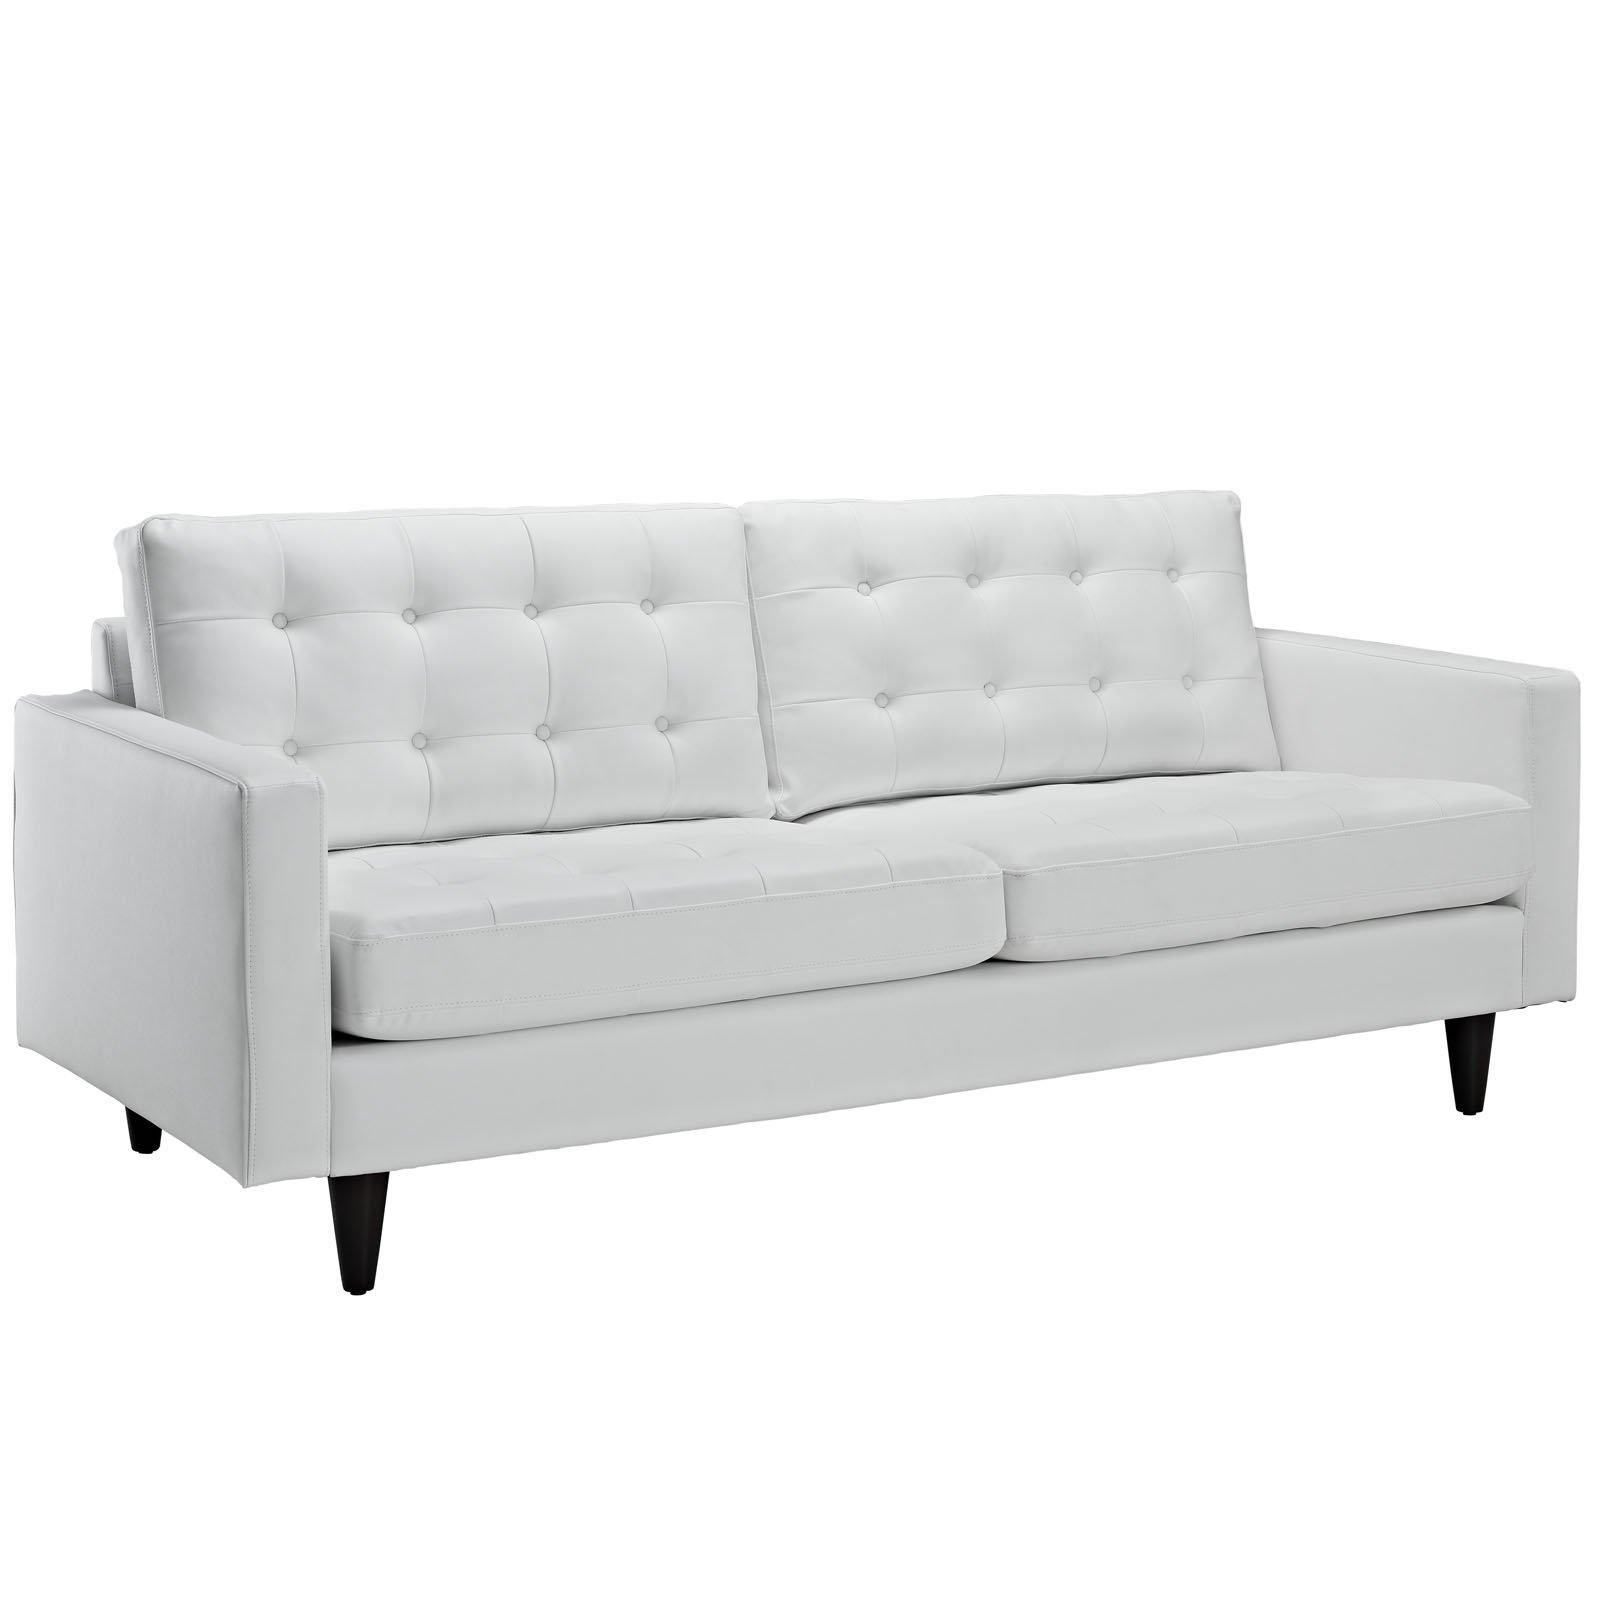 Modway Empress Mid-Century Modern Upholstered Leather Sofa In White by Modway